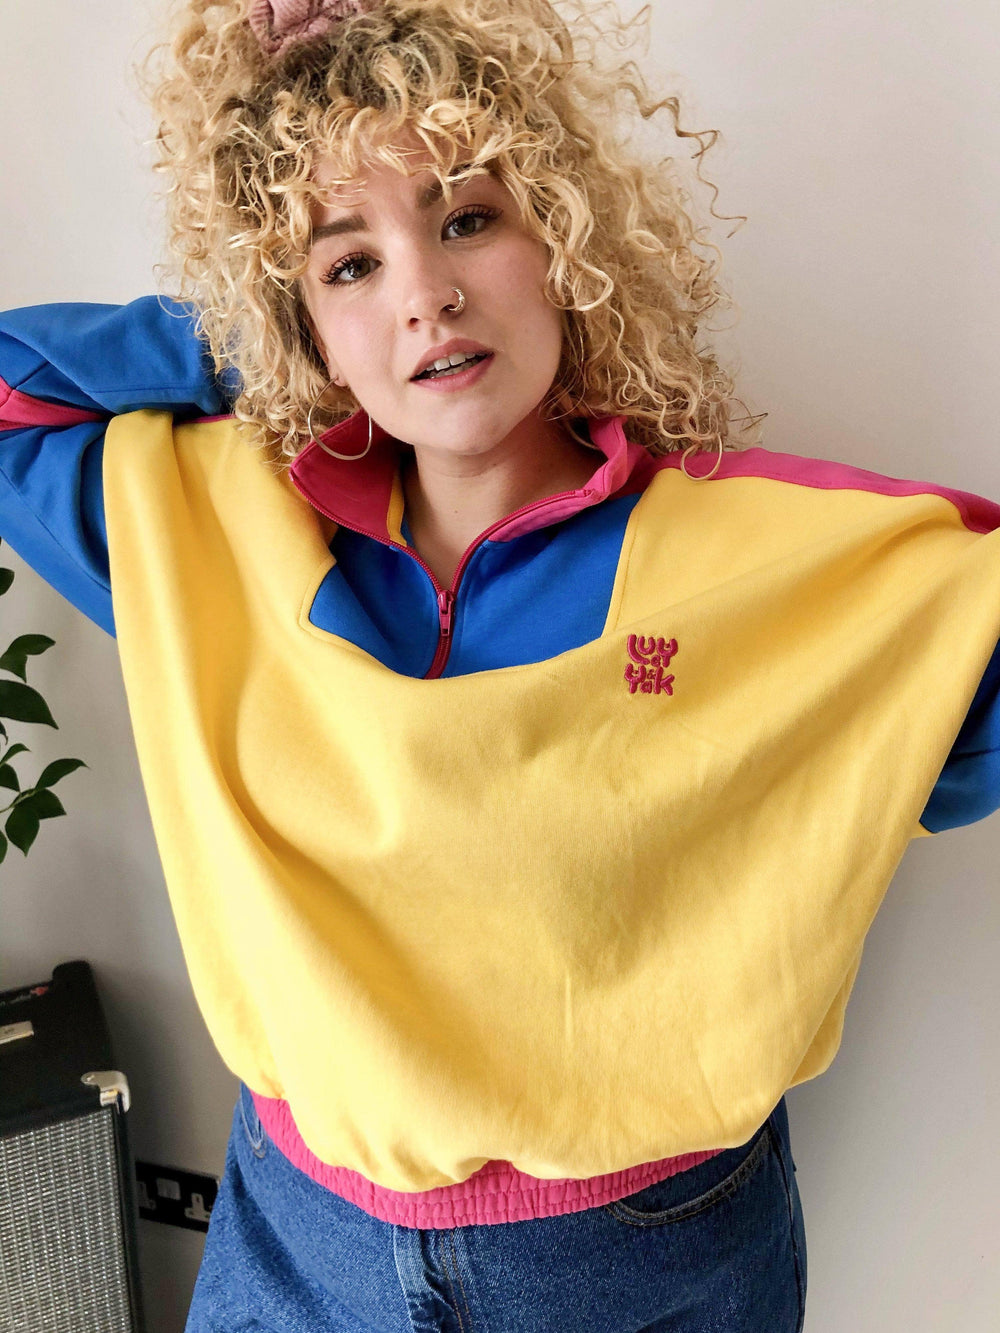 Lucy & Yak Tops Marley Cropped Half Zip Sweater In Yellow, Blue & Pink